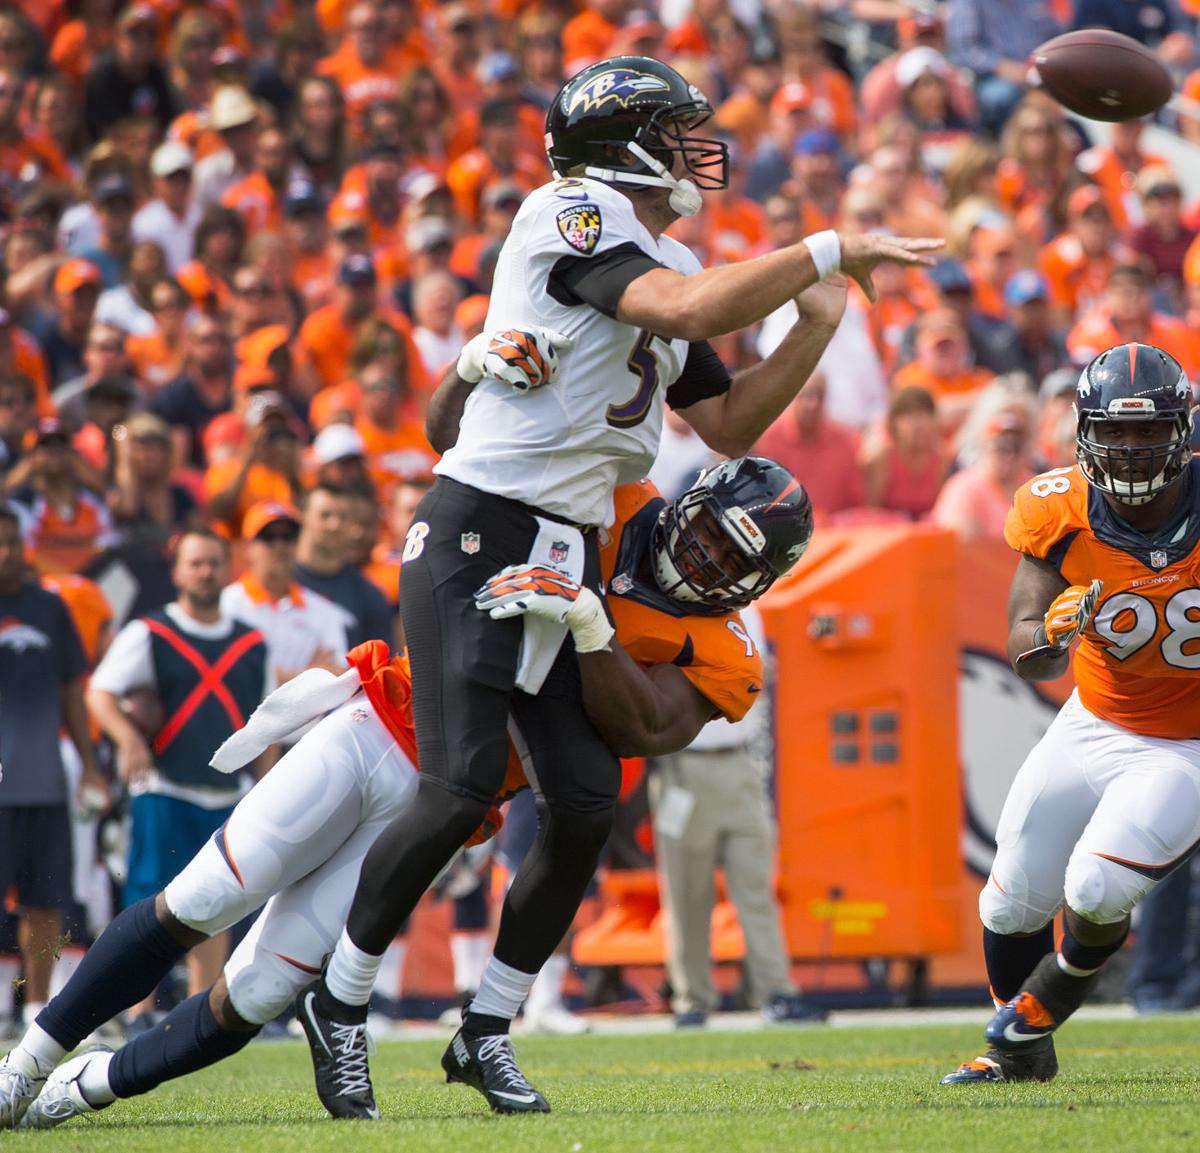 Denver linebacker DeMarcus Ware hits Baltimore quarterback Joe Flacco as he attempts a pass during the second quarter Sunday, Sept. 13, 2015, at Sports Authority Field at Mile High in Denver. (The Gazette, Christian Murdock)